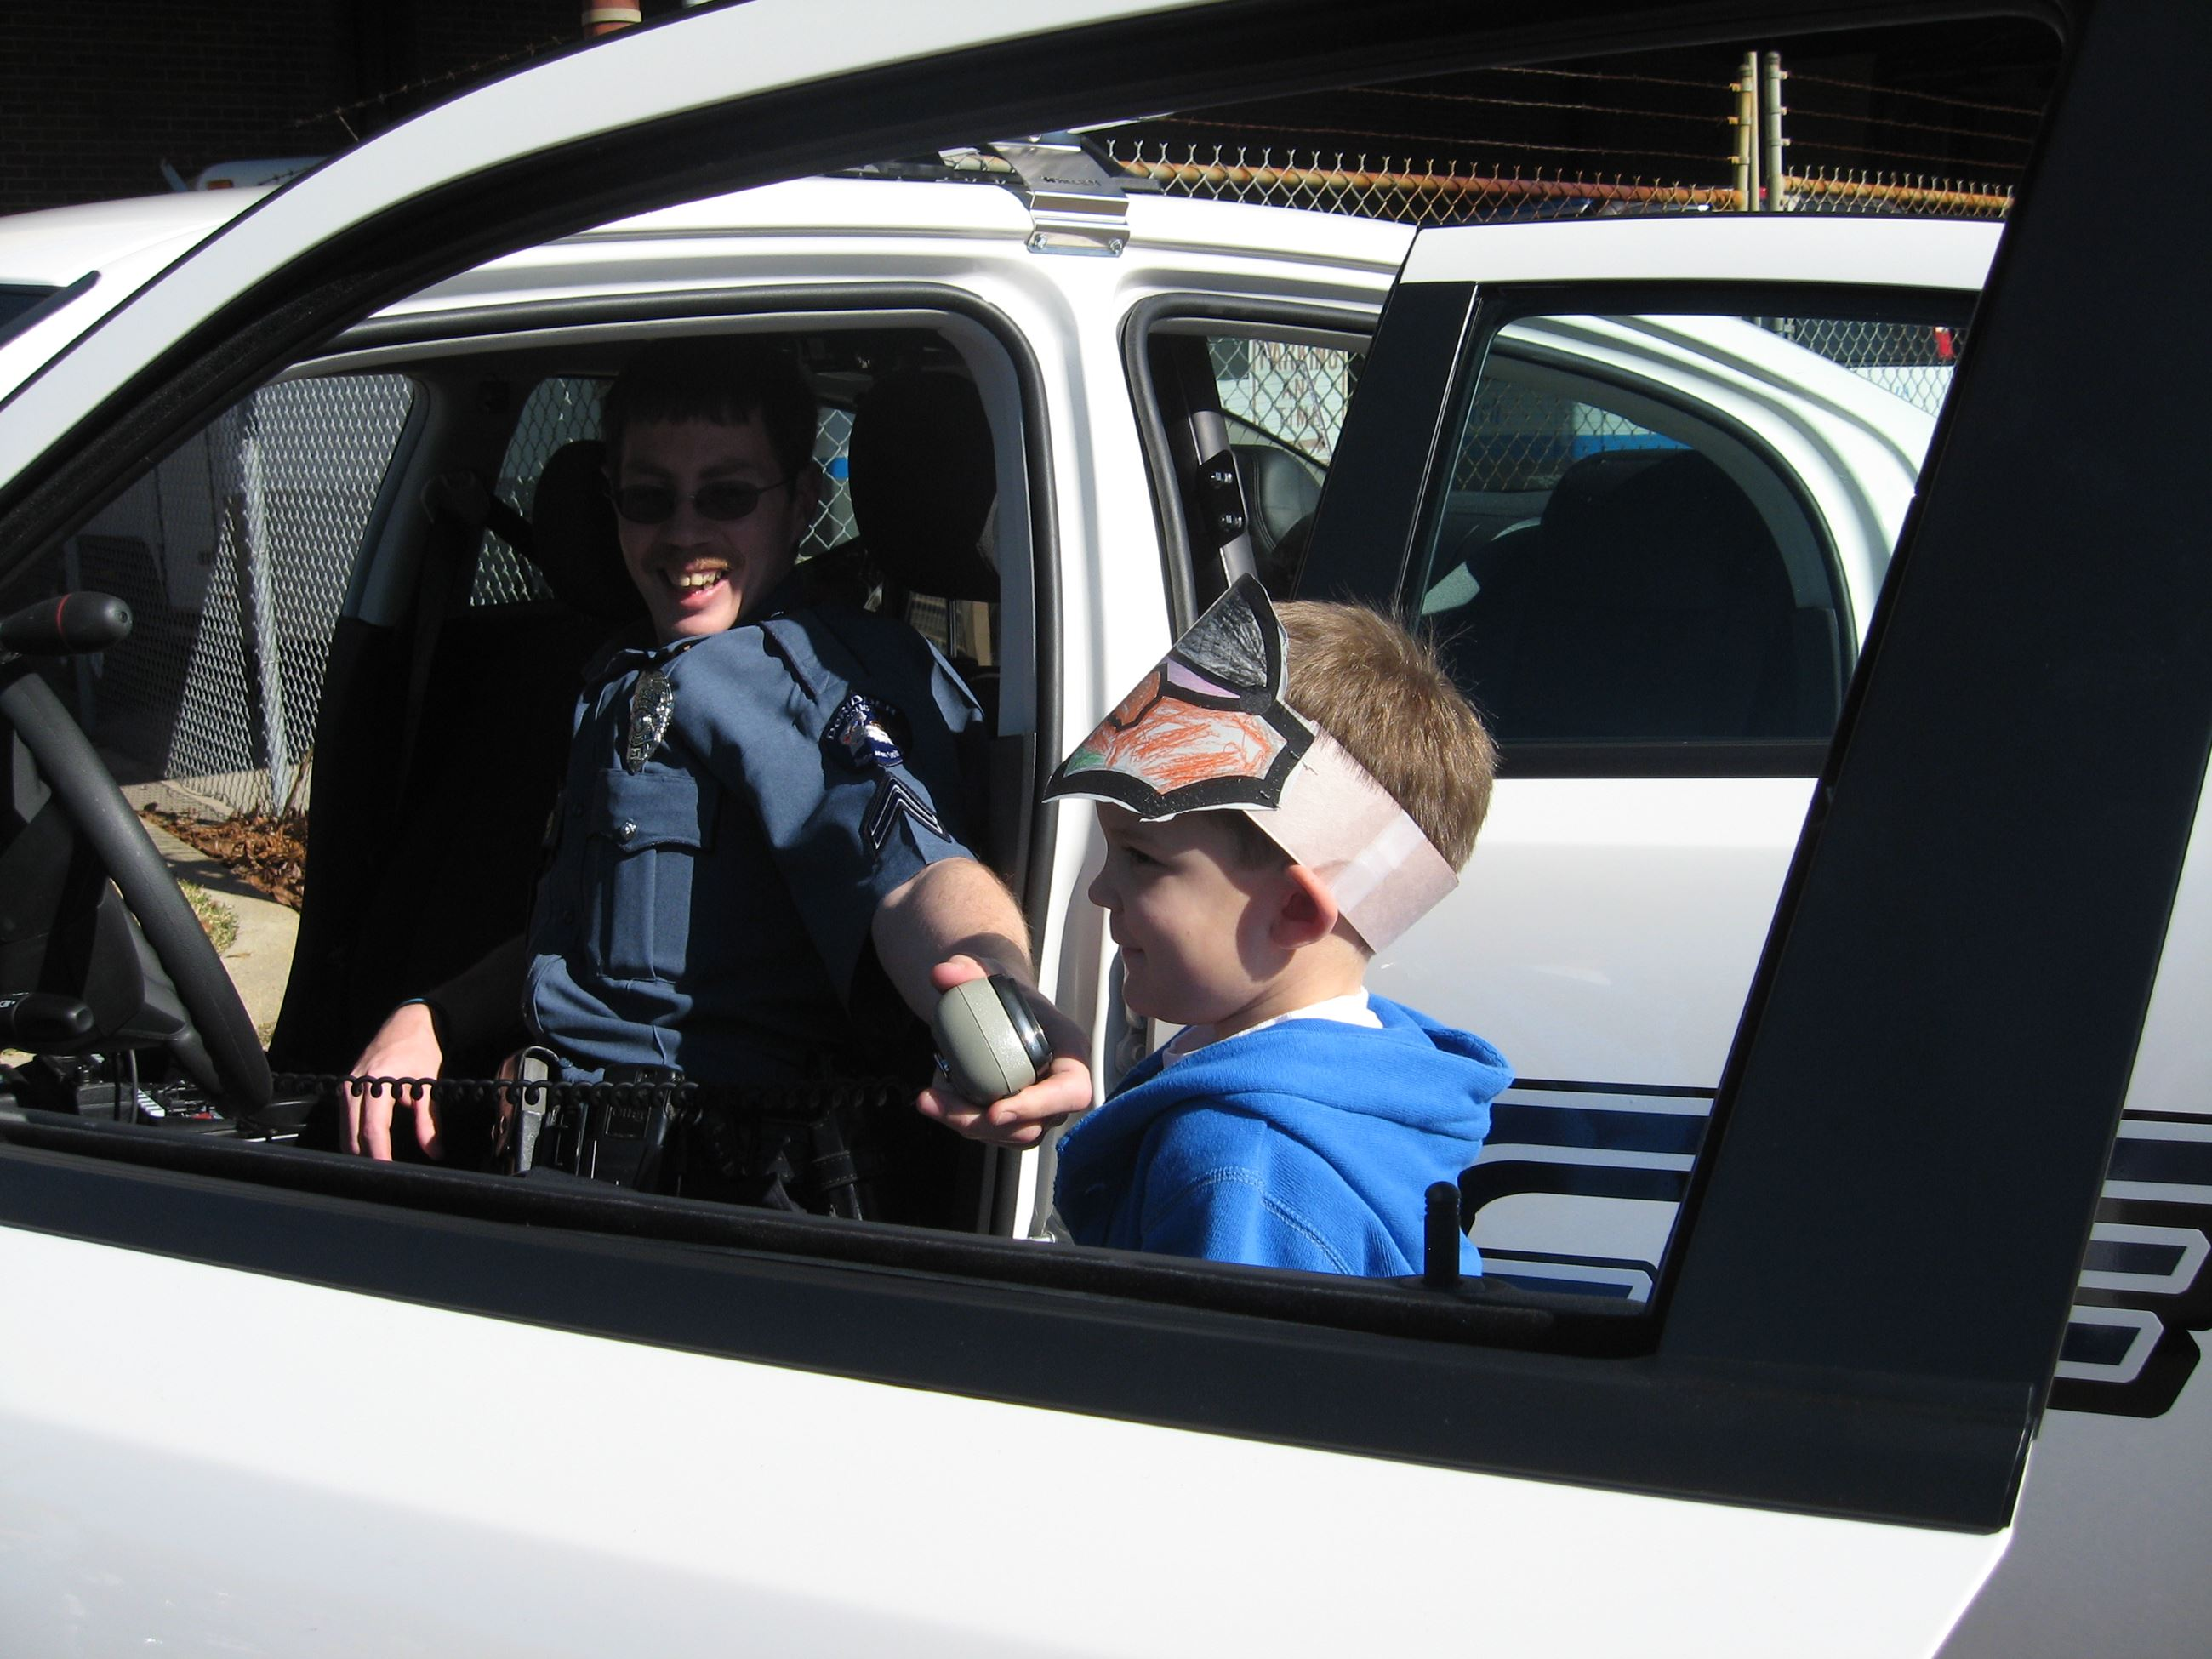 Officer Lets Child Use Car Radio